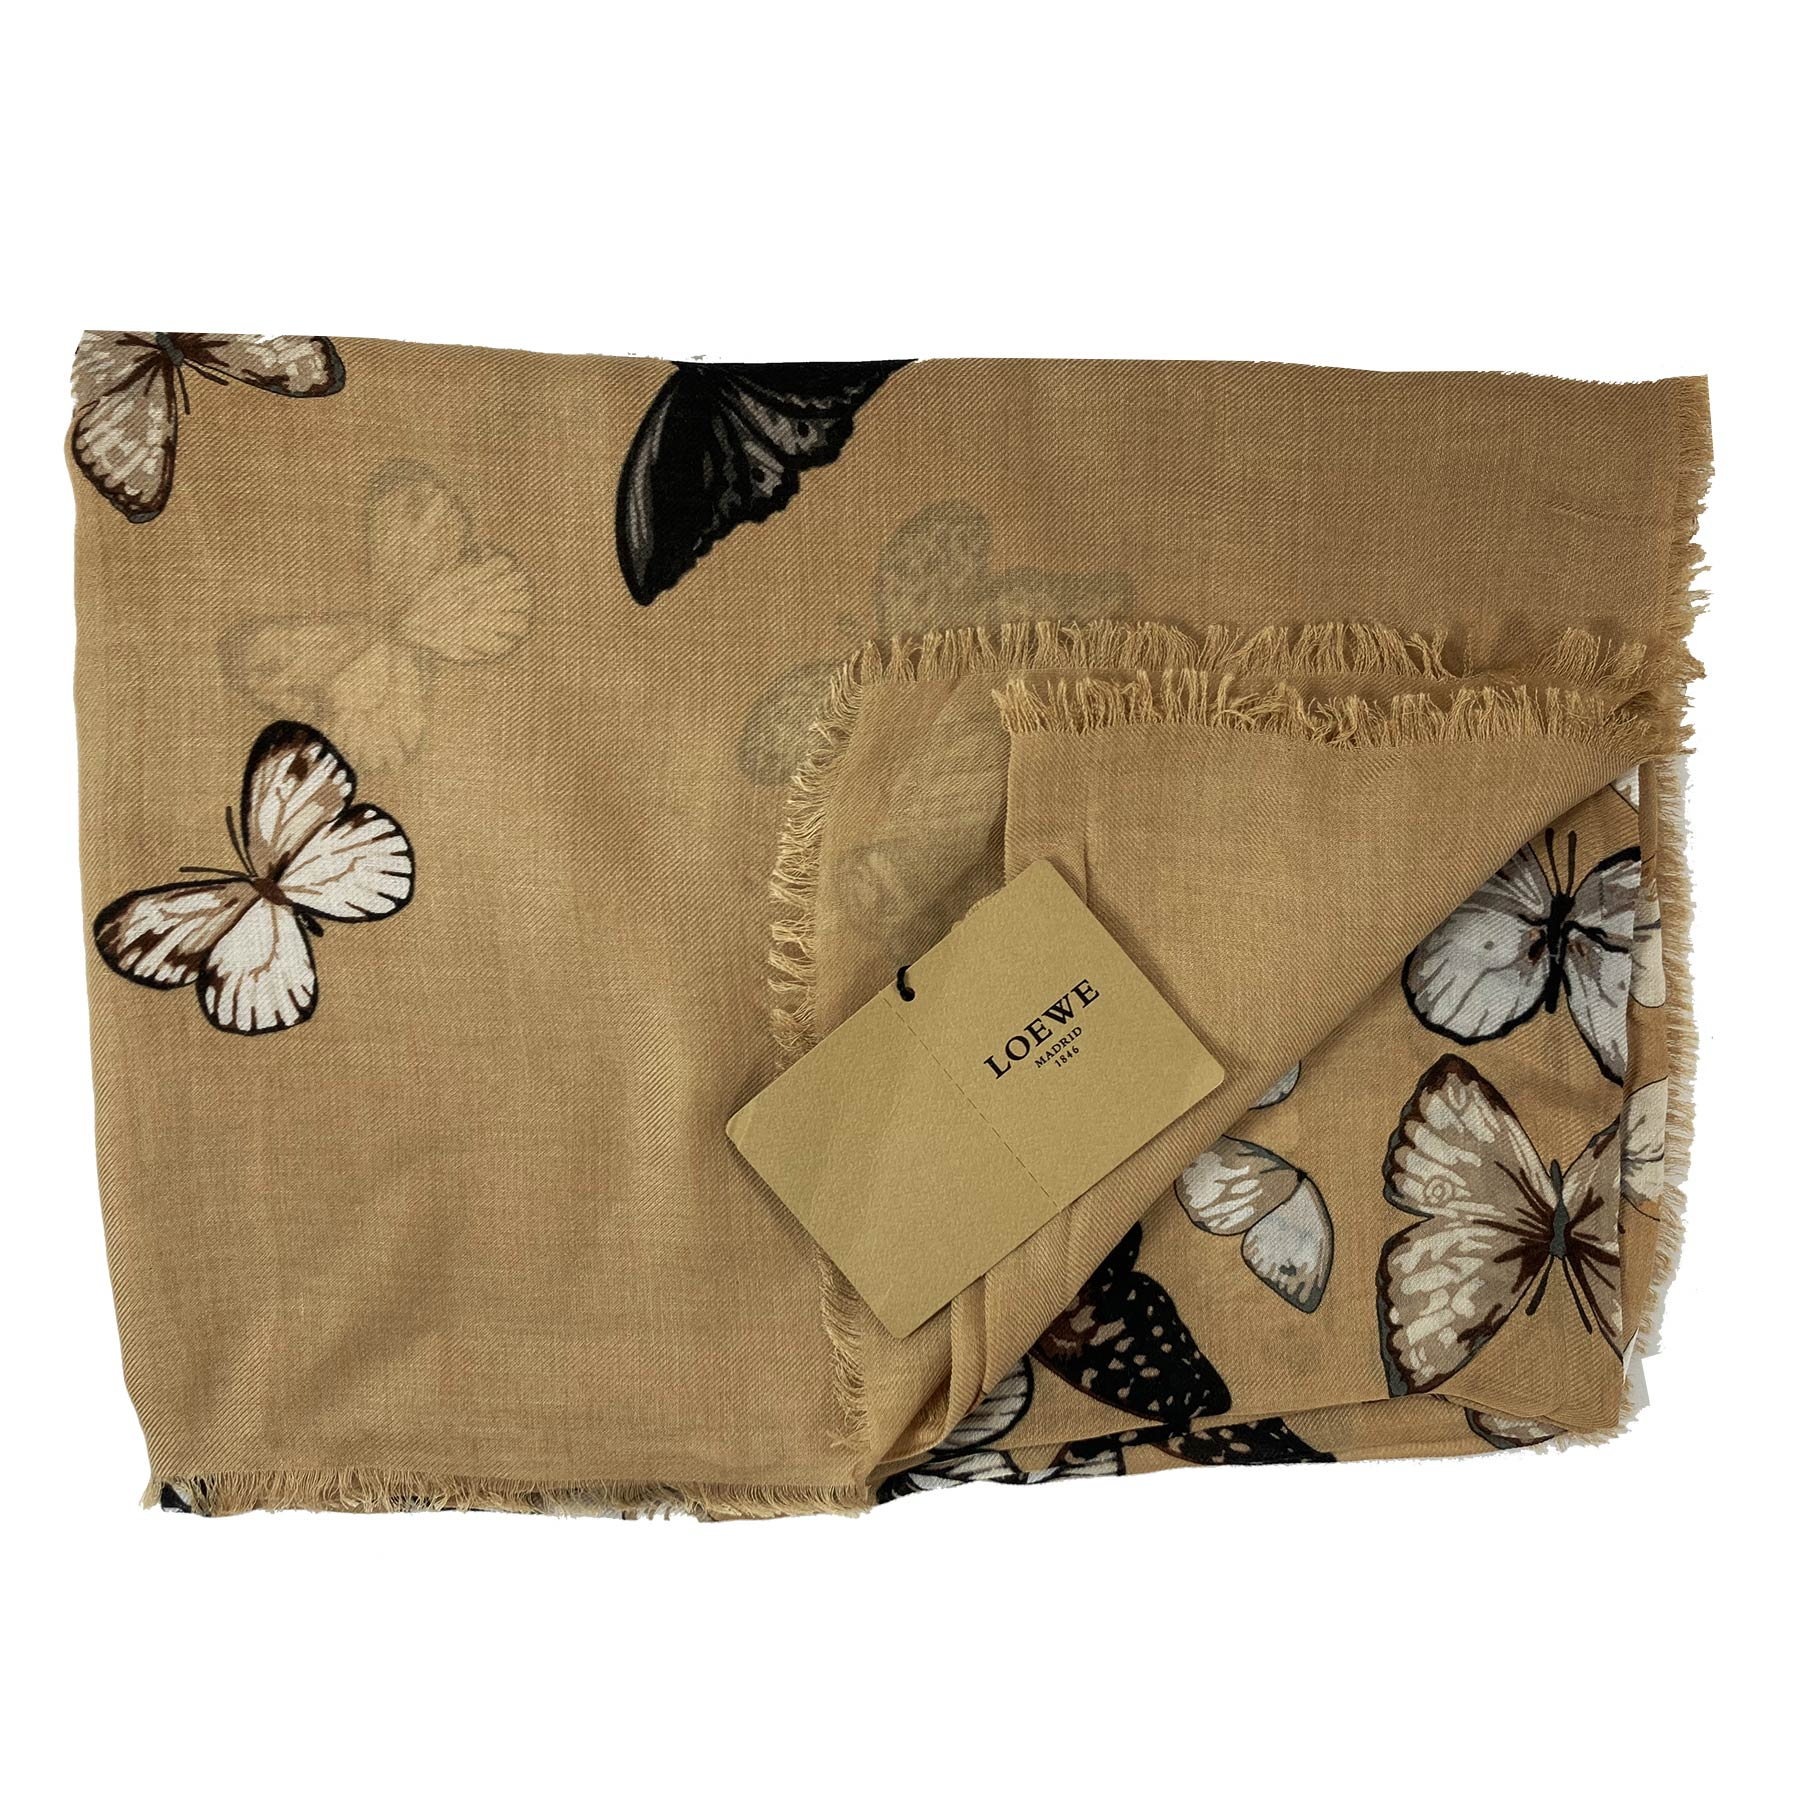 Loewe Scarf Camel Butterfly Design - Extra Large Cashmere Blend Shawl